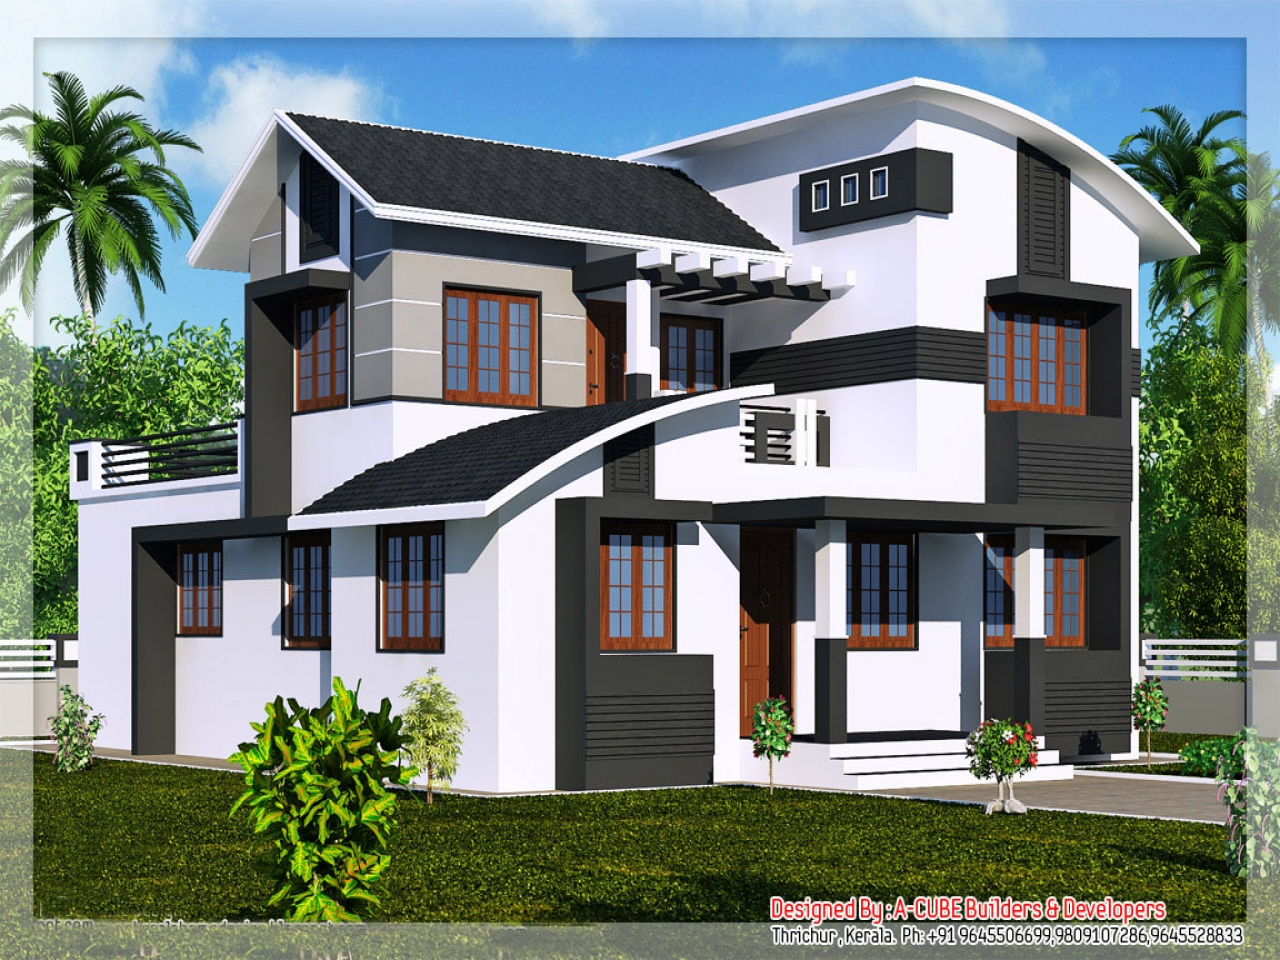 India duplex house design duplex house plans and designs Indian duplex house plans with photos